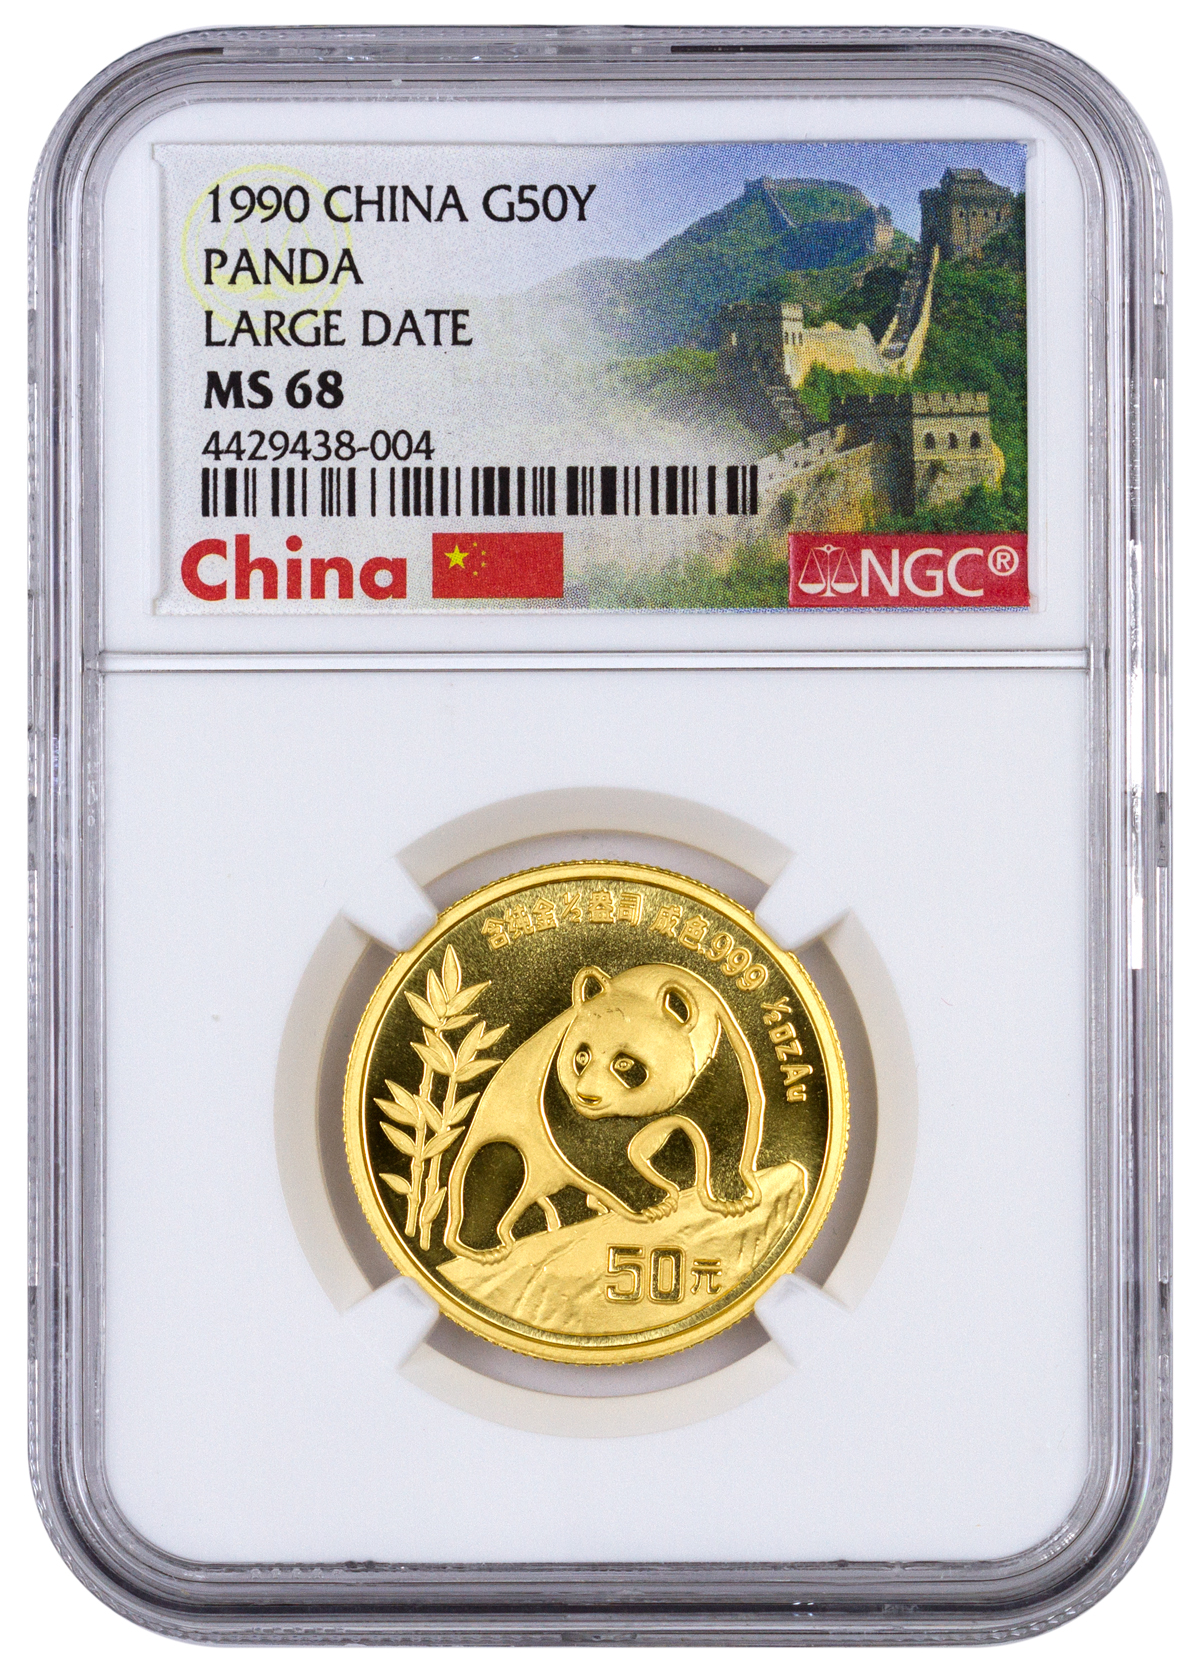 1990 China 1/2 oz Gold Panda - Large Date ¥50 Coin NGC MS68 (Exclusive Great Wall Label)